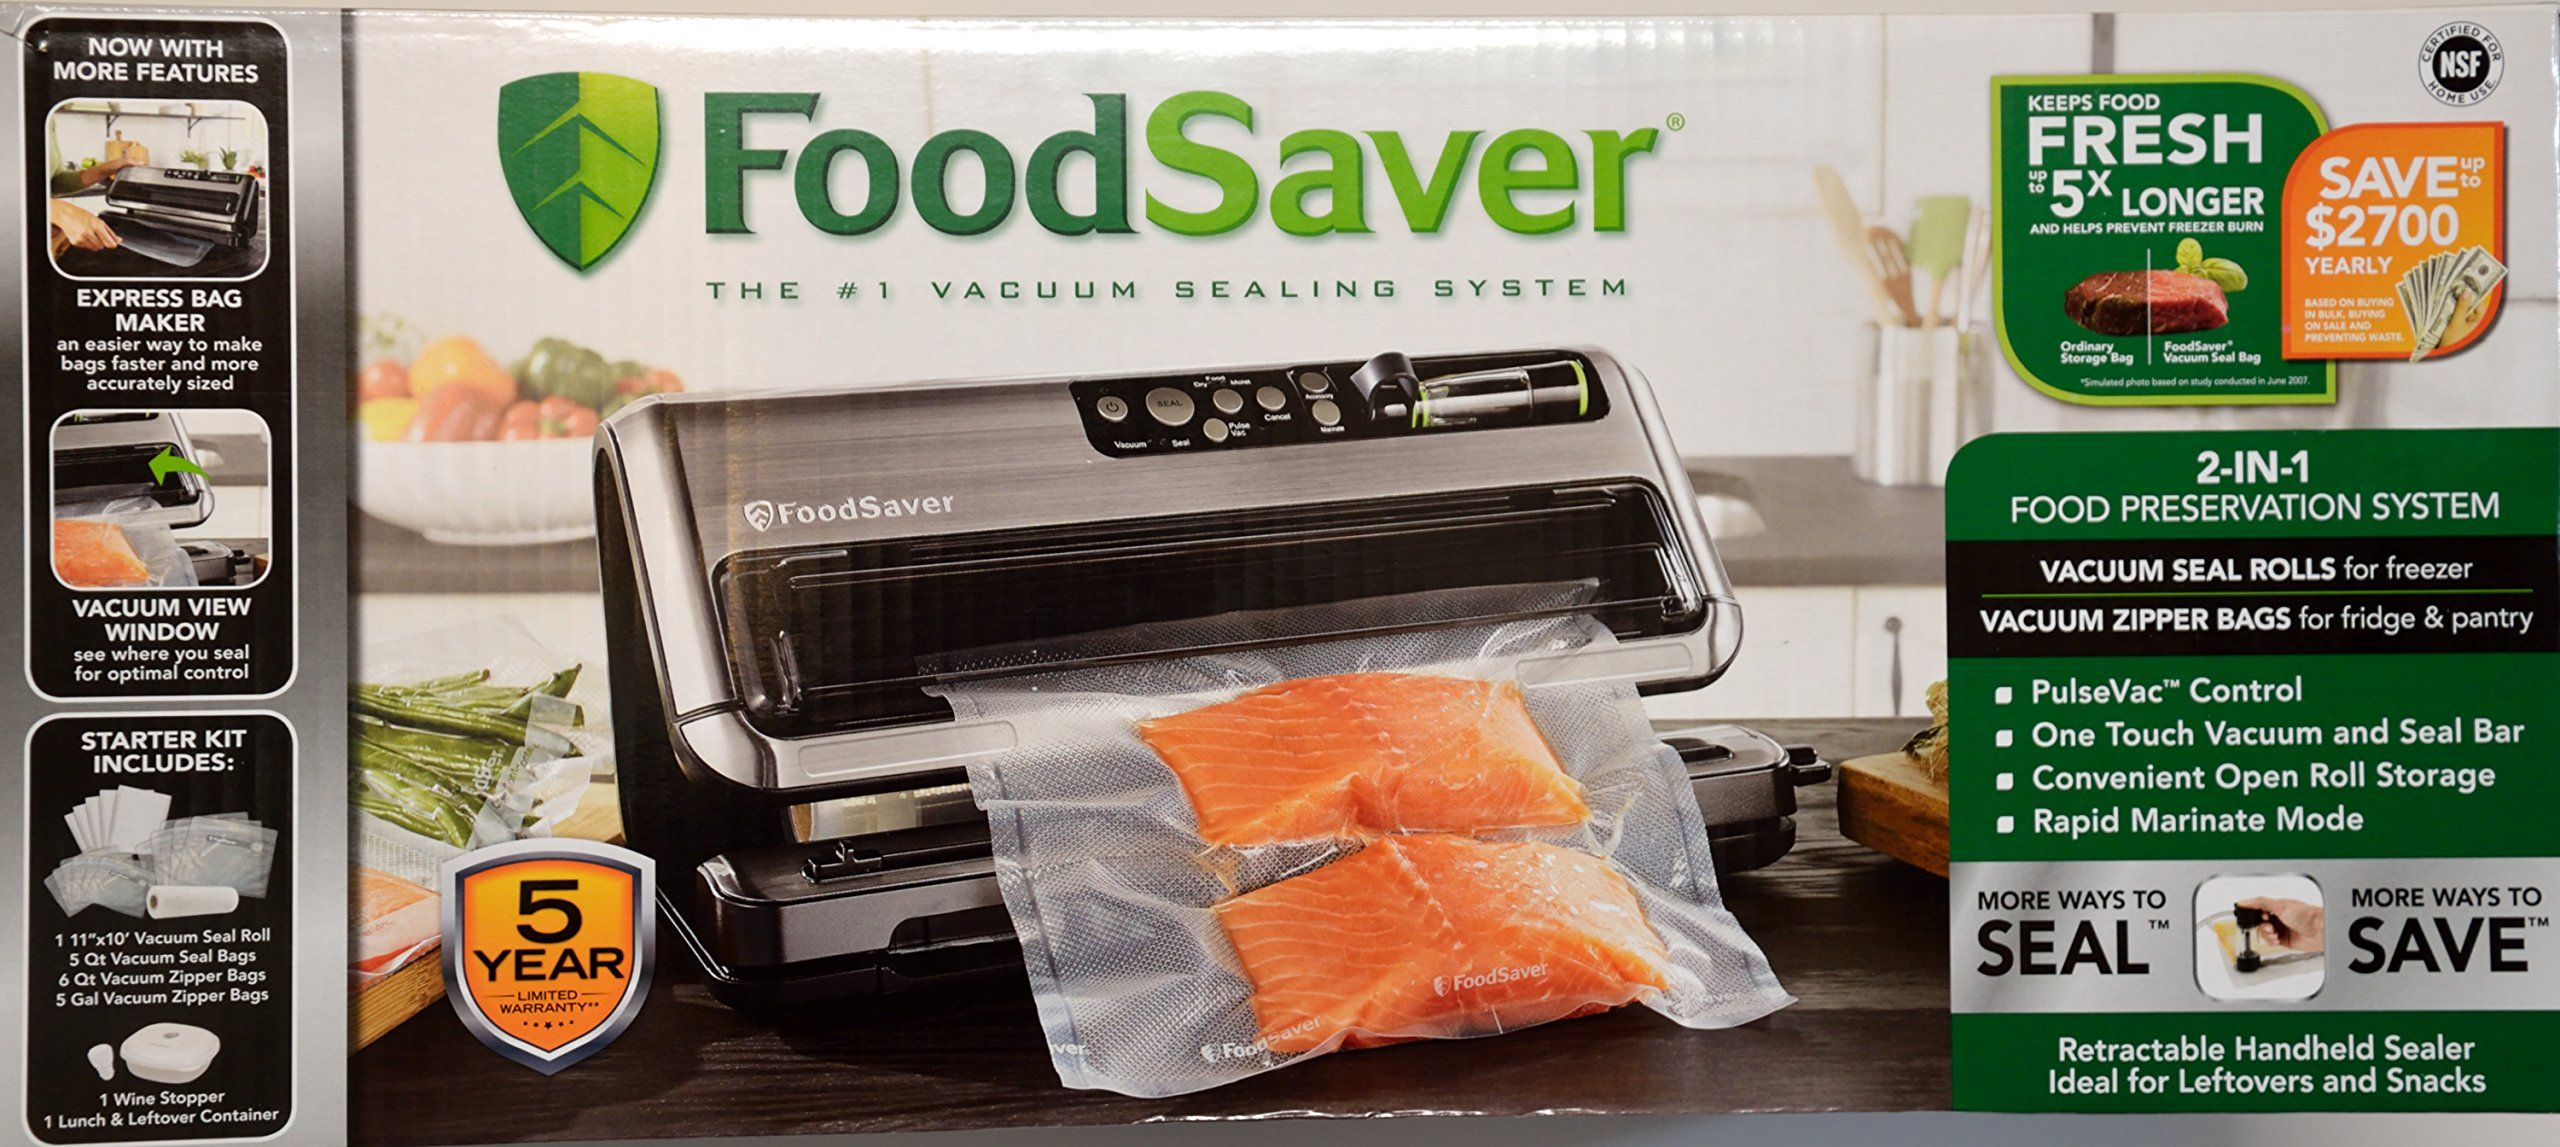 Foodsaver 2in1 vacuum sealing system with starter kit 5400